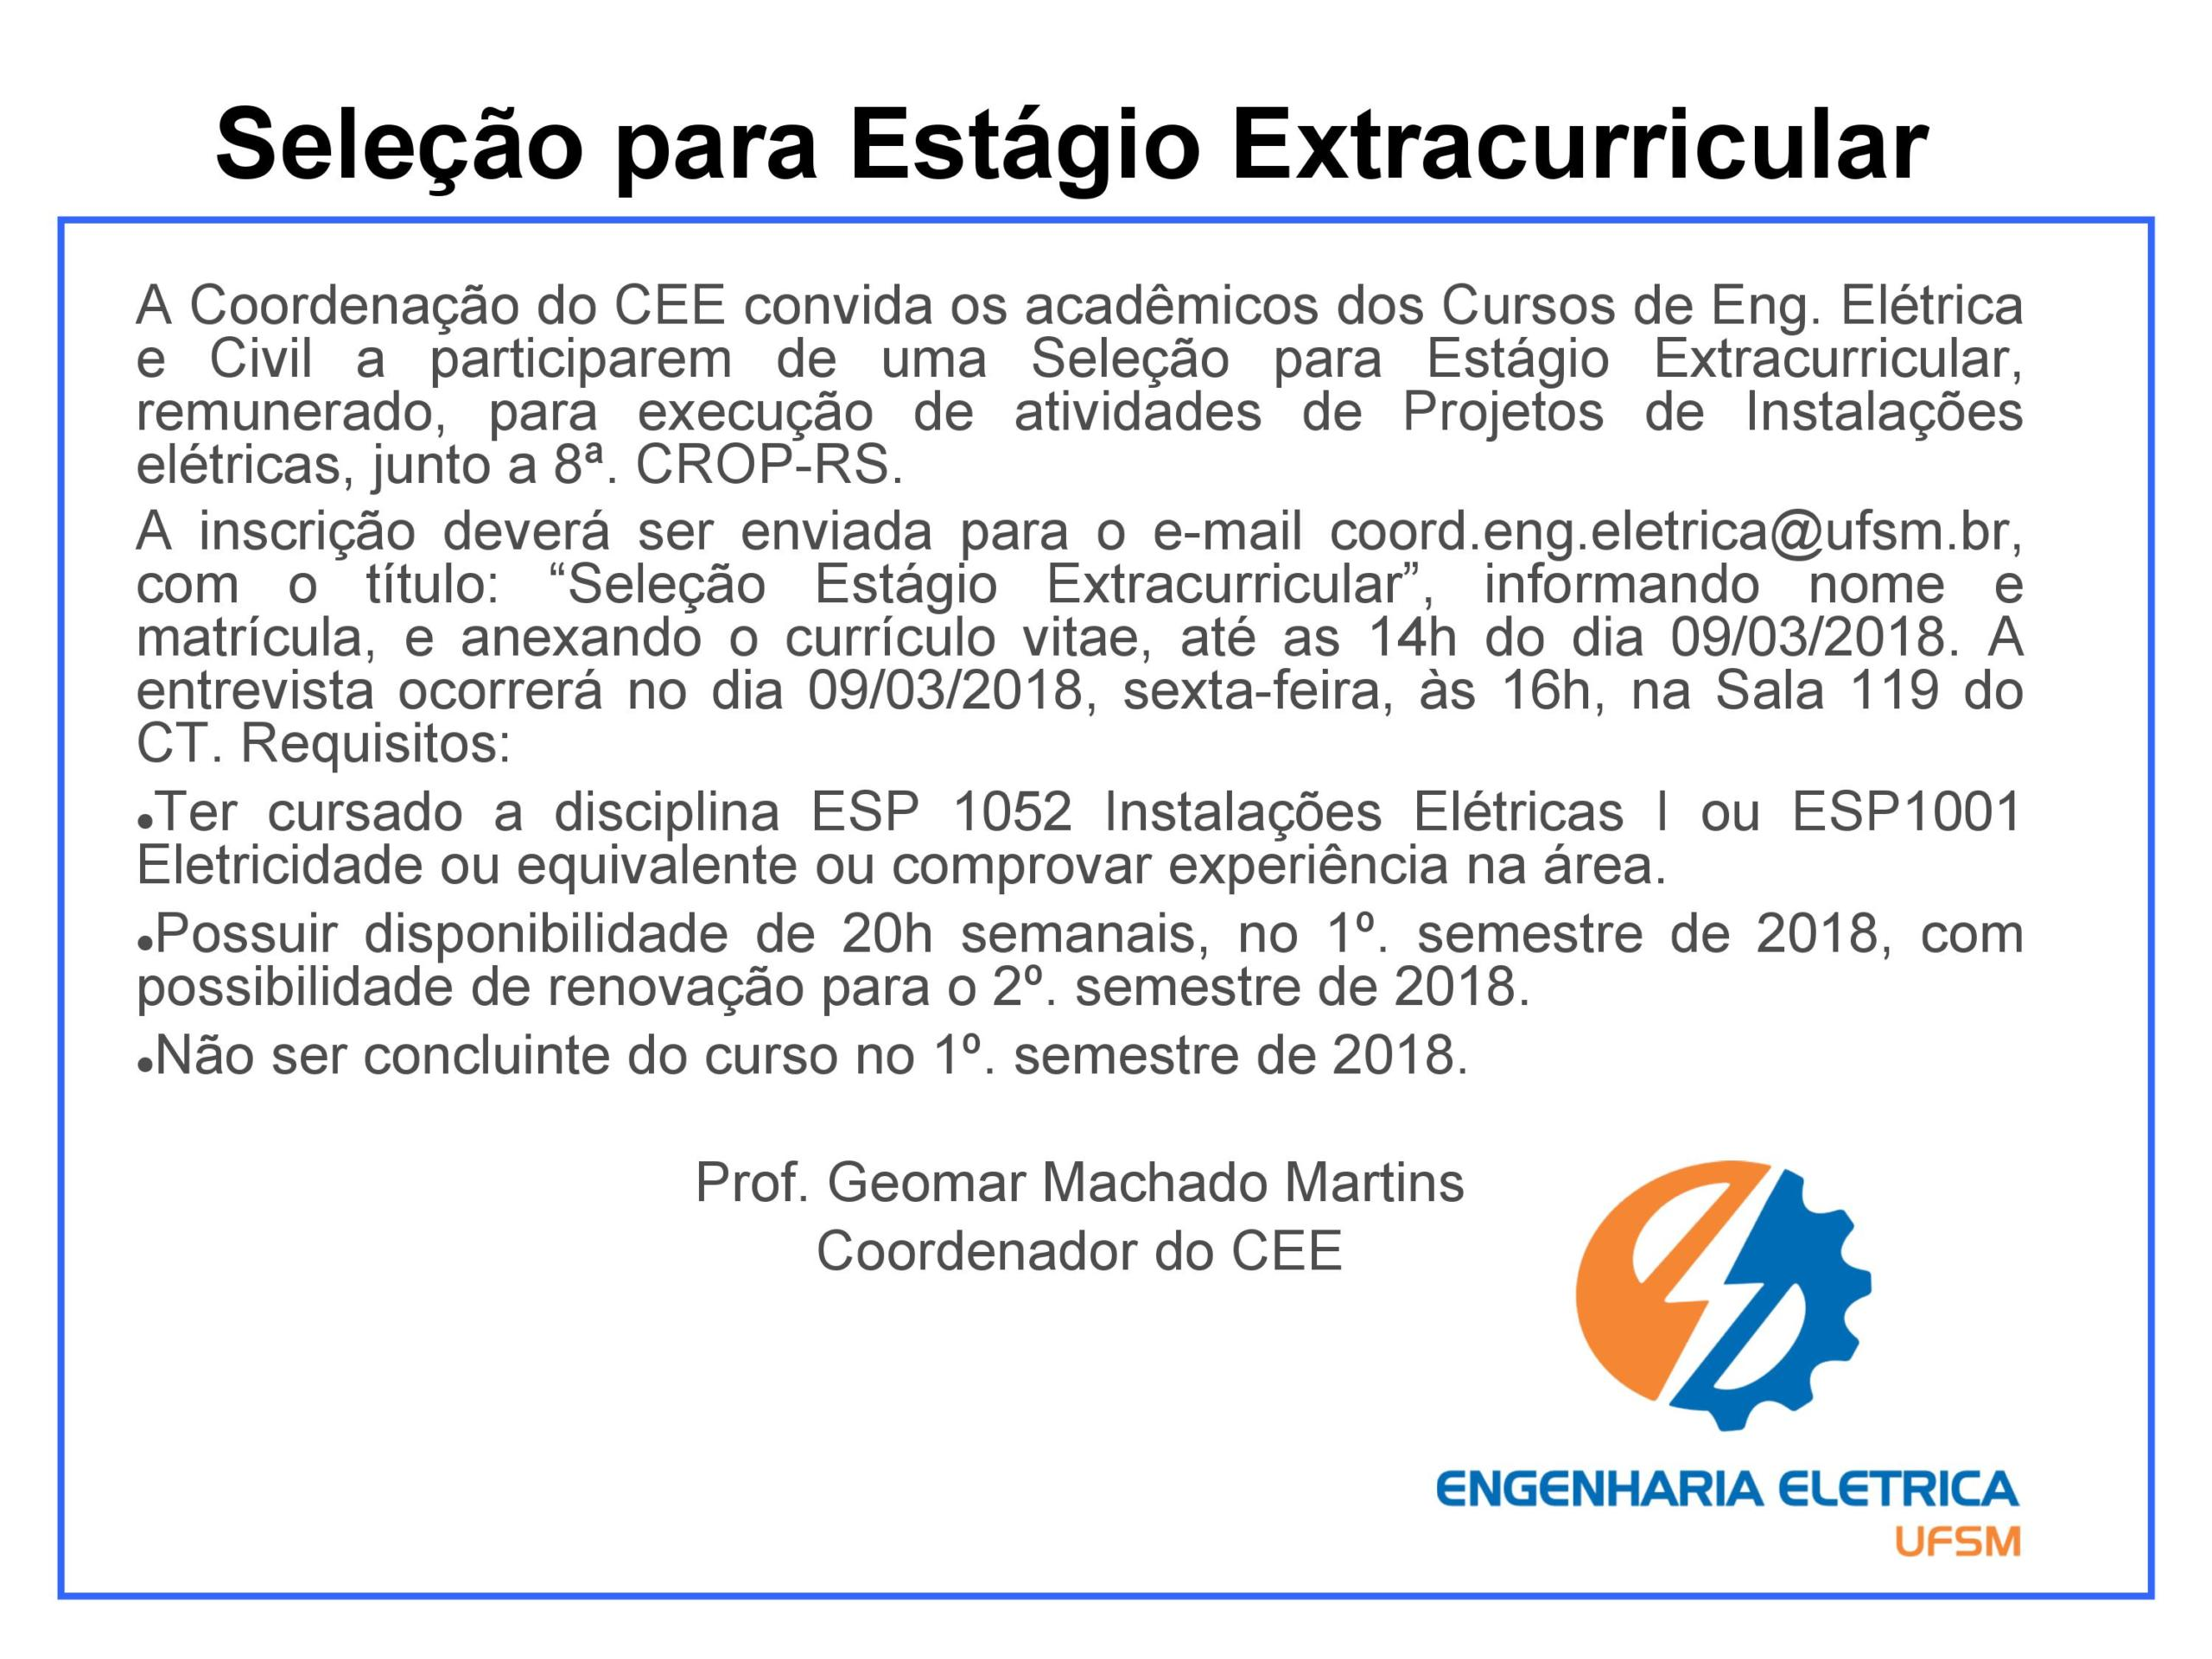 ESTAGIO EXTRACURRICULAR CEE